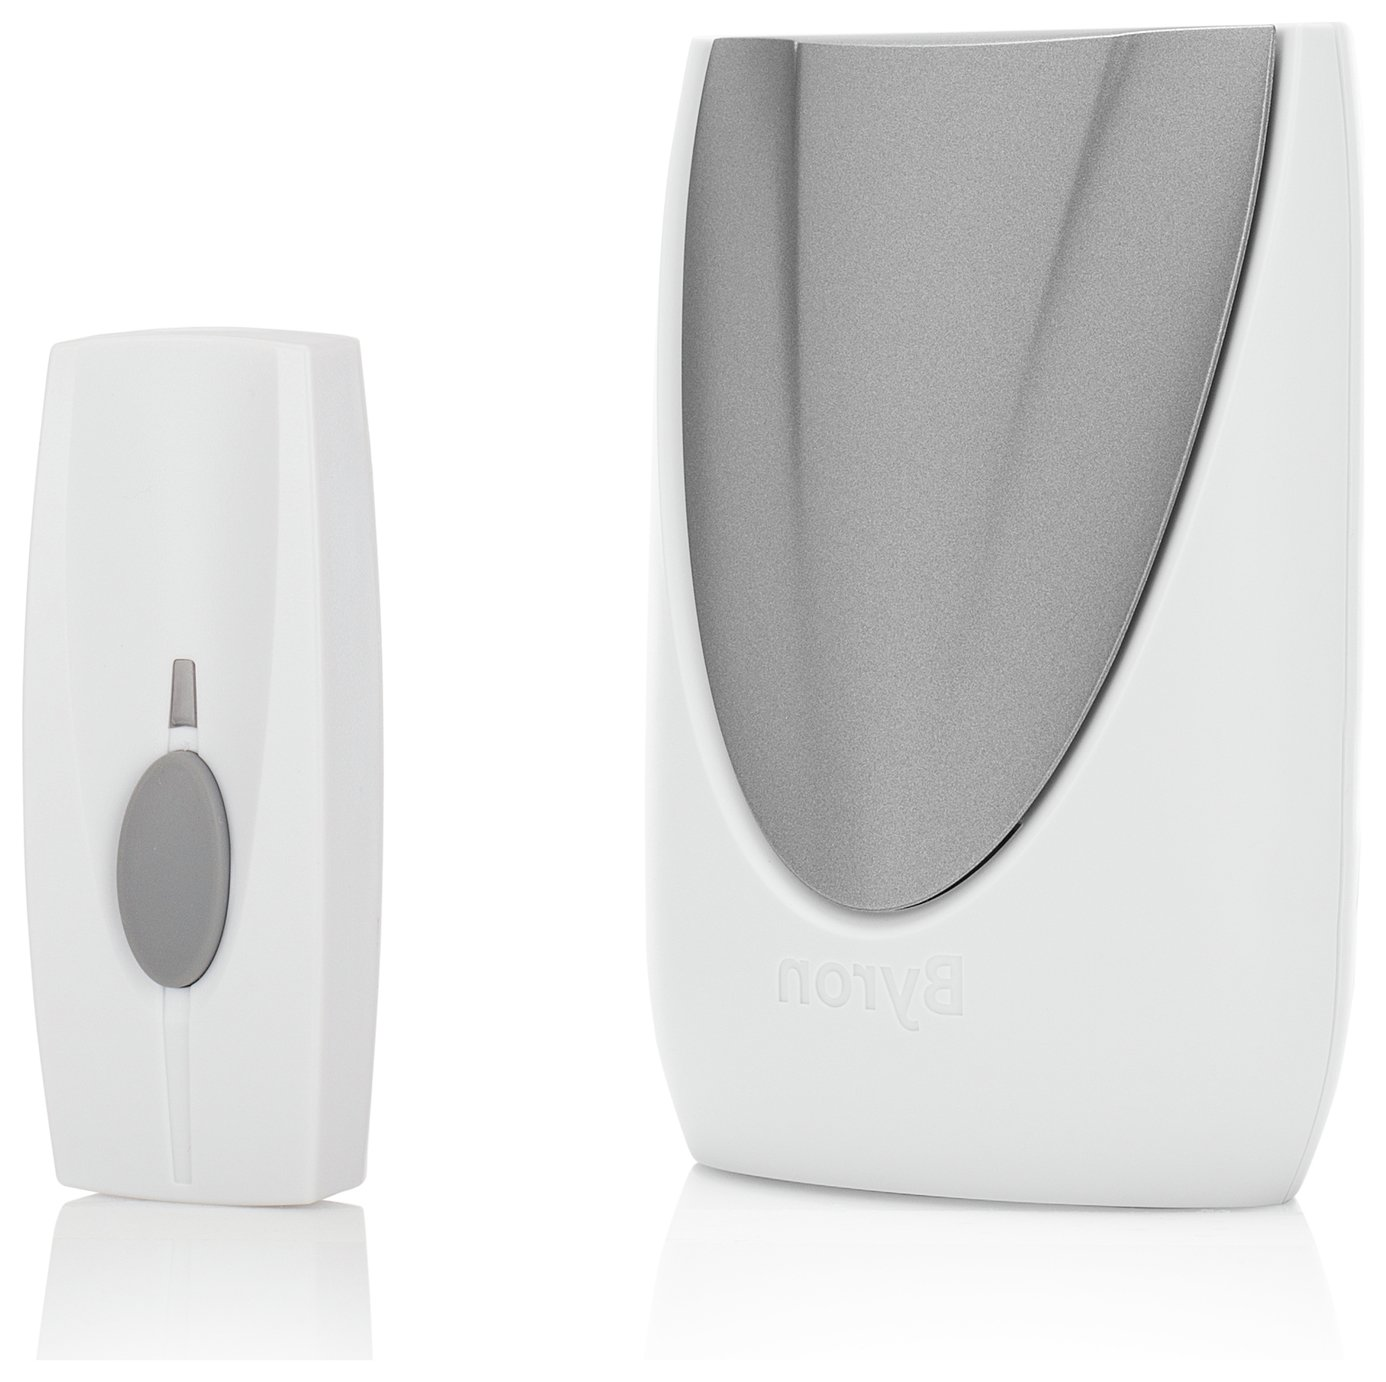 Image of Byron BY216 125m Wireless Doorbell with Plug In Chime